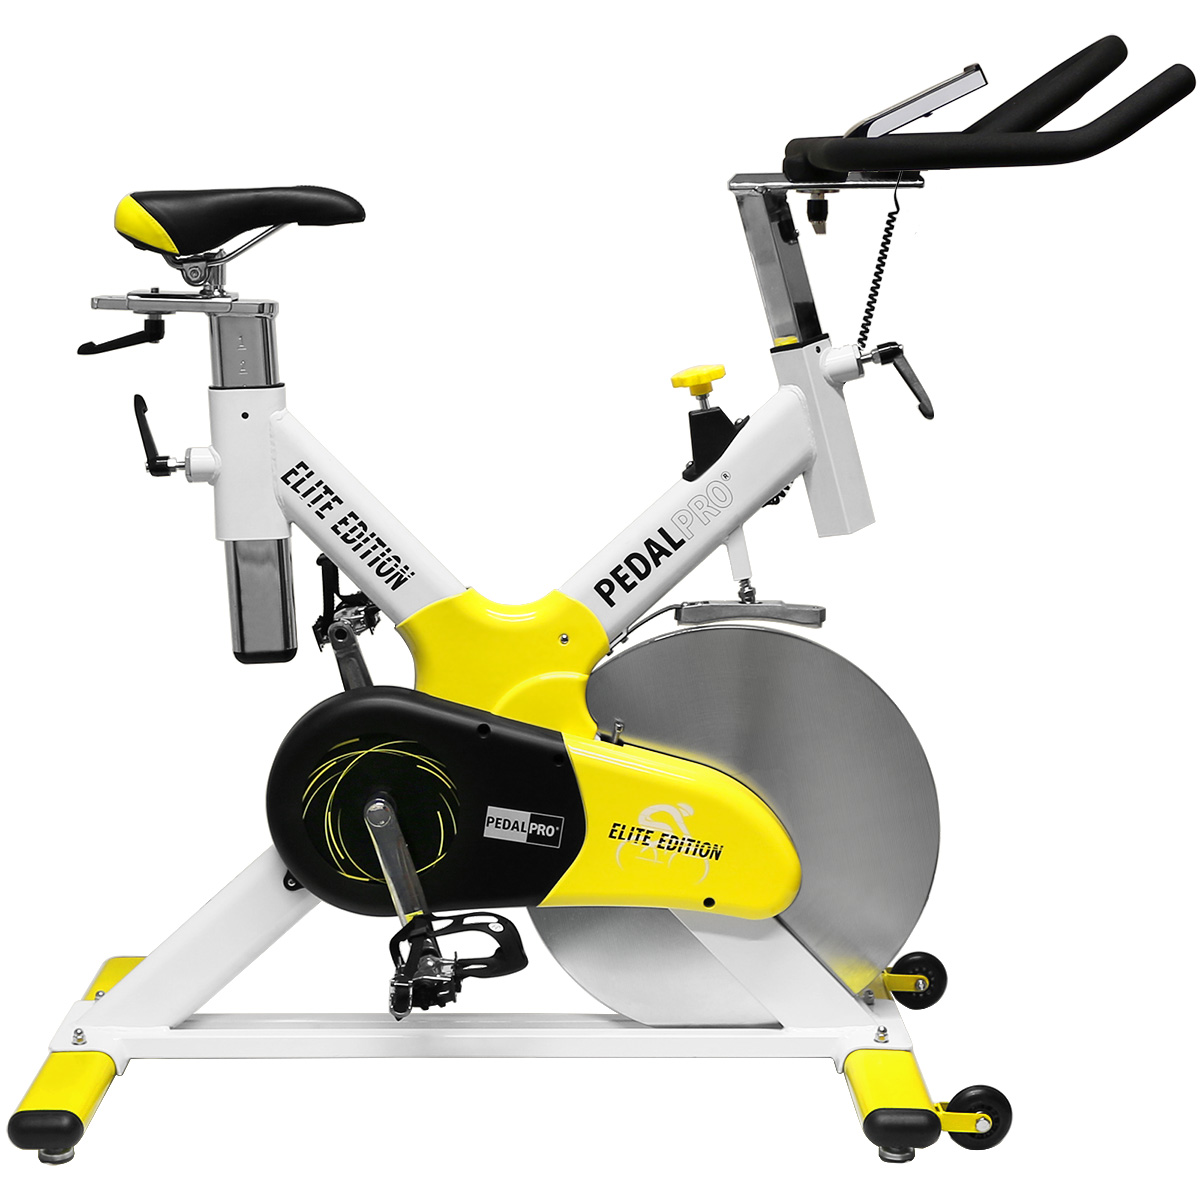 PEDALPRO ELITE EXERCISE BIKE CYCLING GYM STUDIO/CLASS FITNESS TRAINING BICYCLE